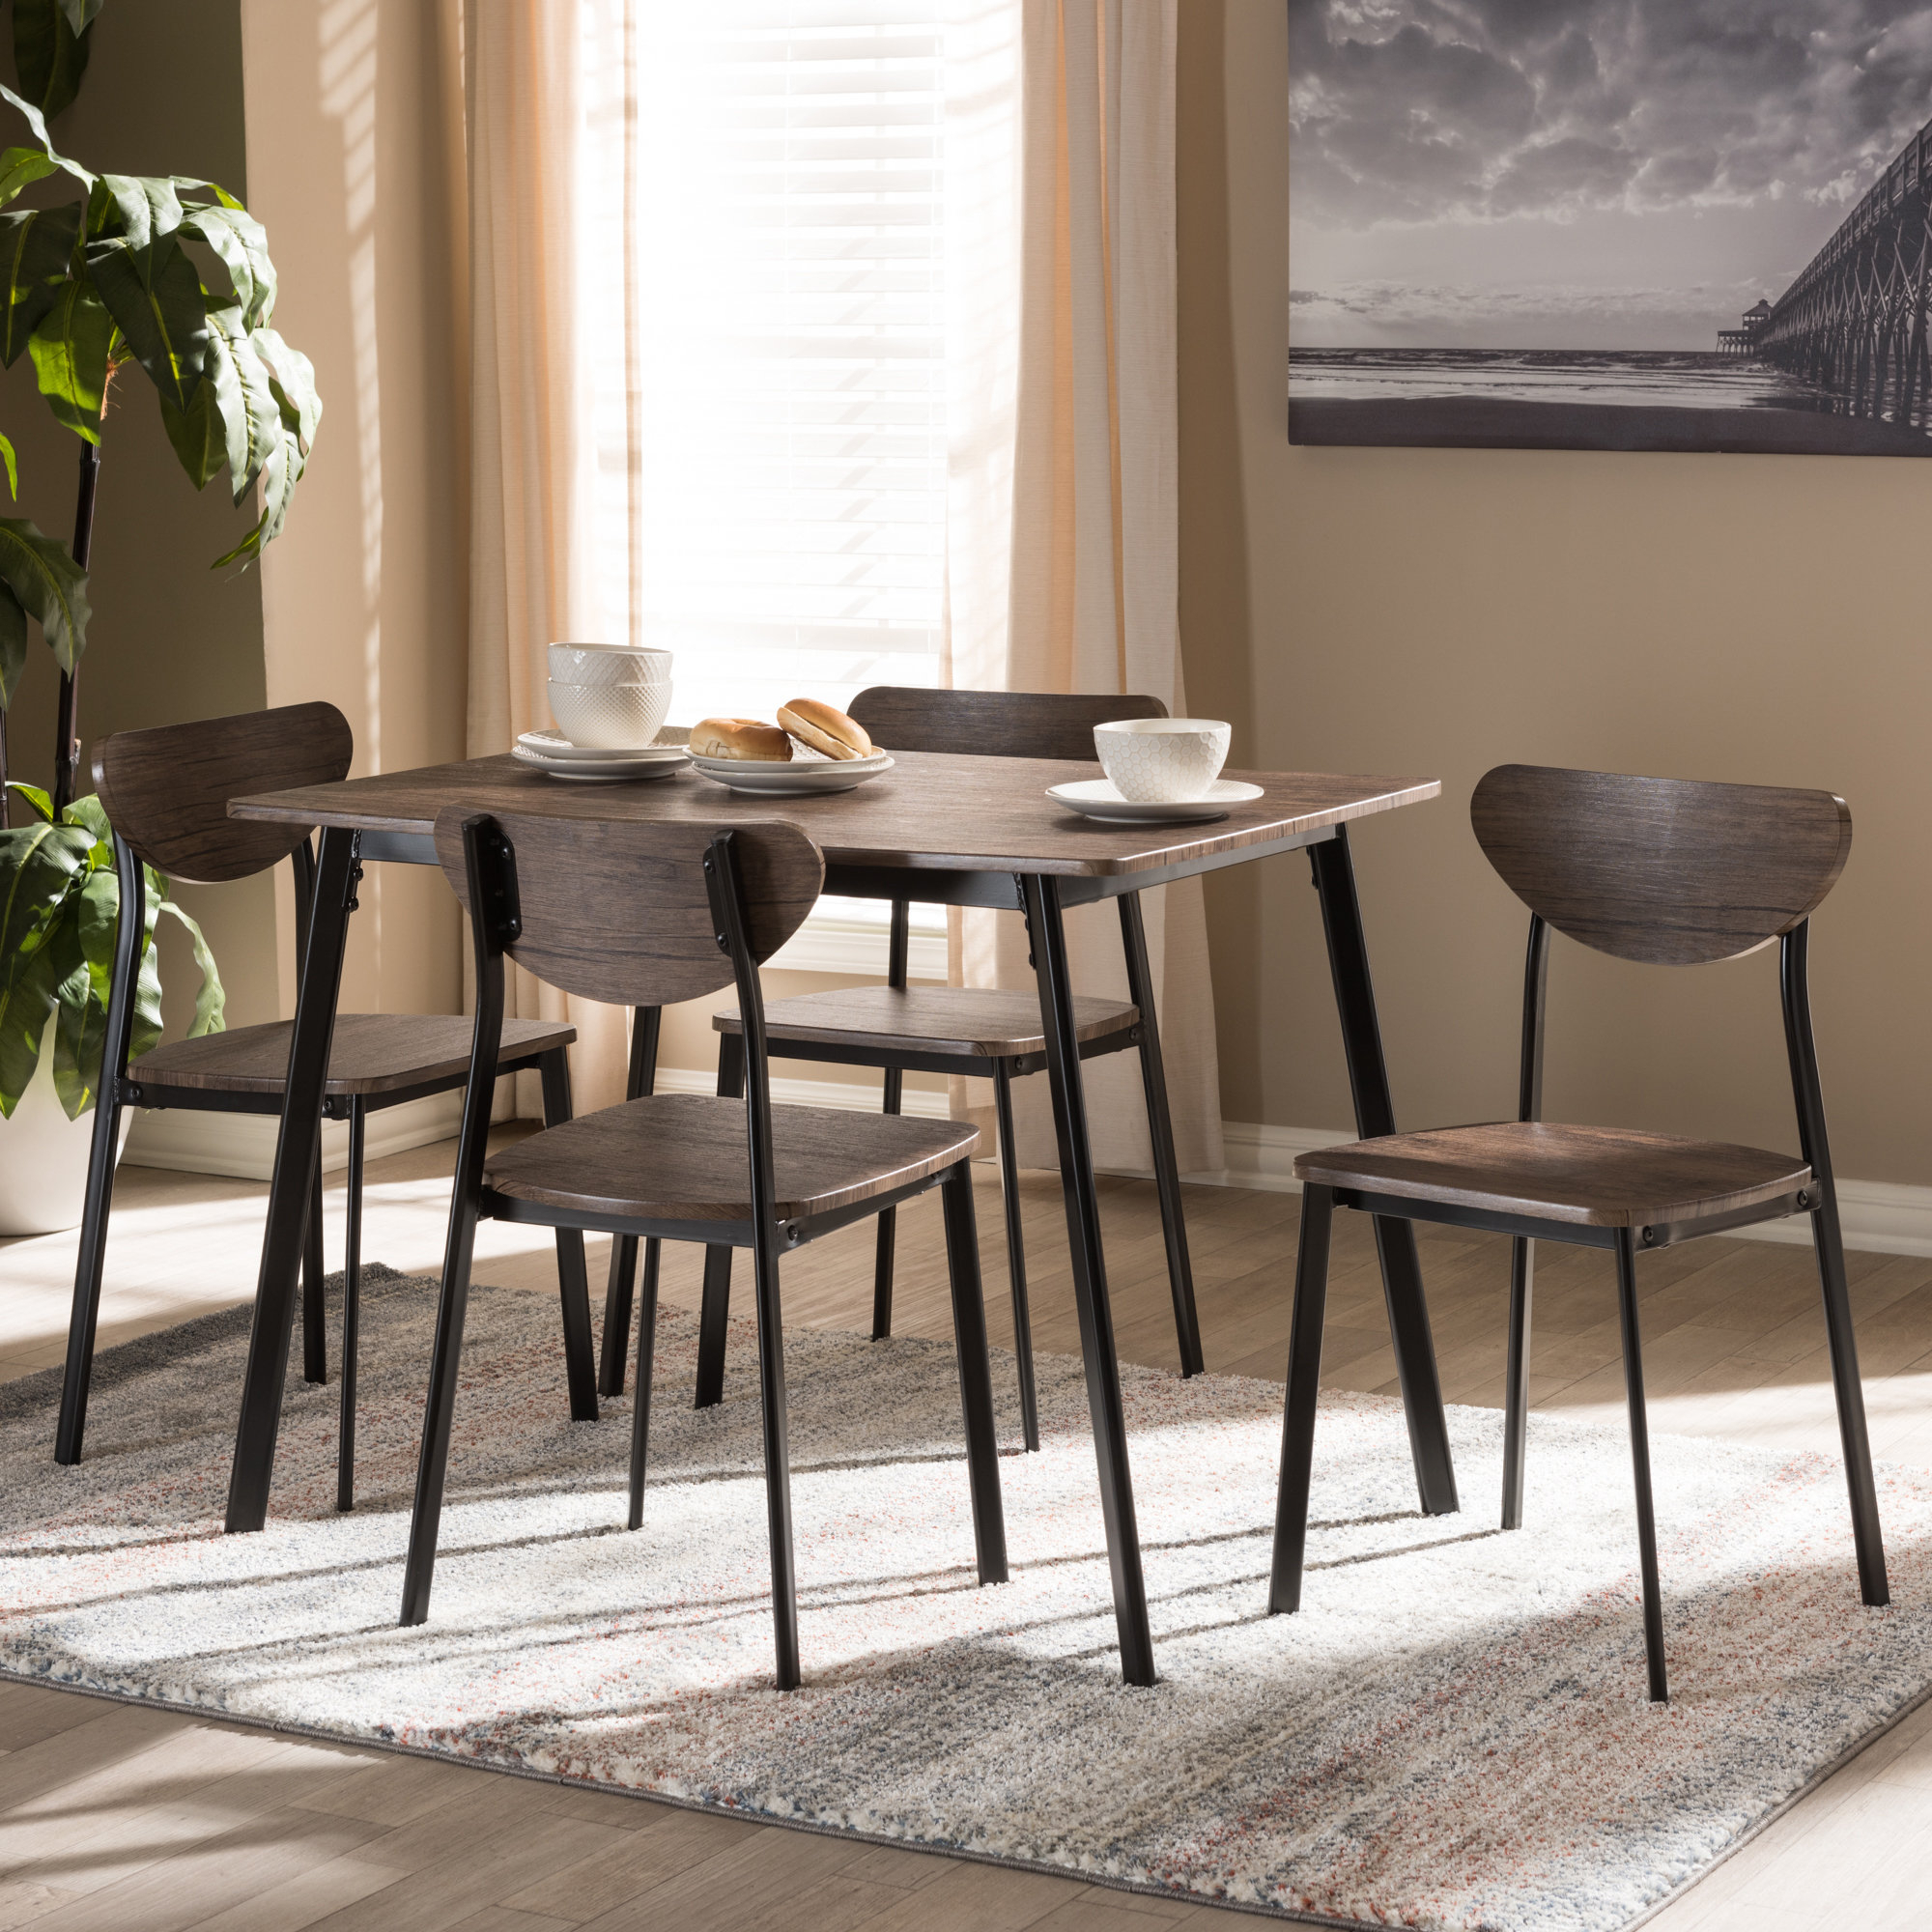 Details About Union Rustic Tejeda 5 Piece Dining Set With Regard To Latest Tejeda 5 Piece Dining Sets (View 2 of 20)